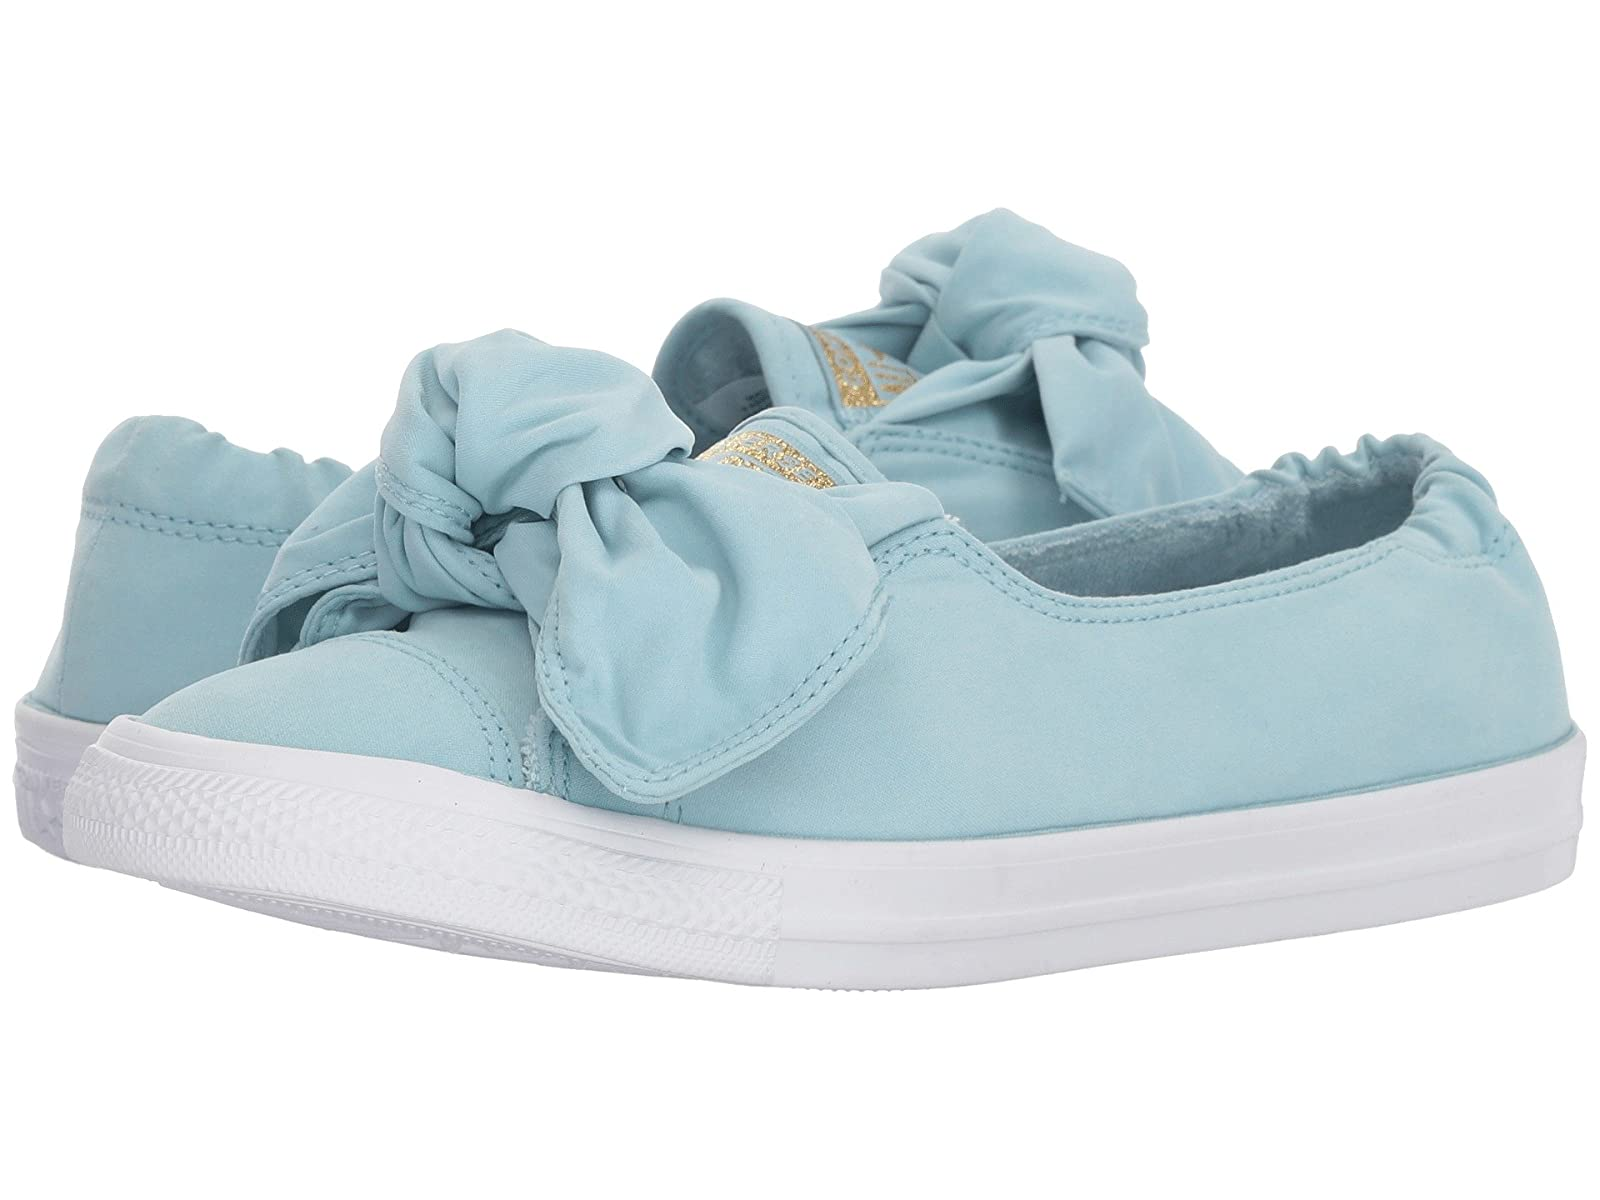 Converse Chuck Taylor® All Star® Knot SlipCheap and distinctive eye-catching shoes